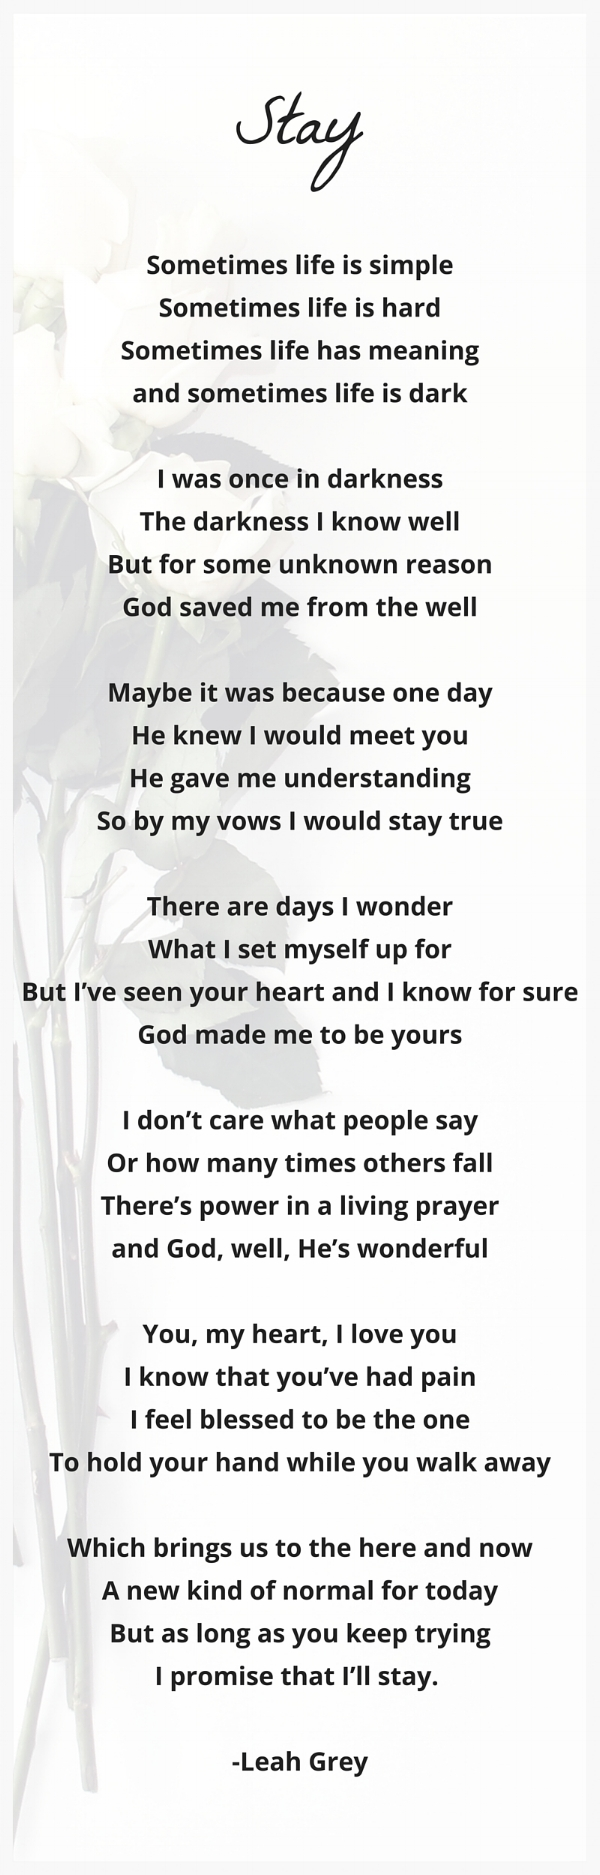 """""""You Ain't Gotta Make Your Mind Up (Right Now)"""" By: Leah Grey 